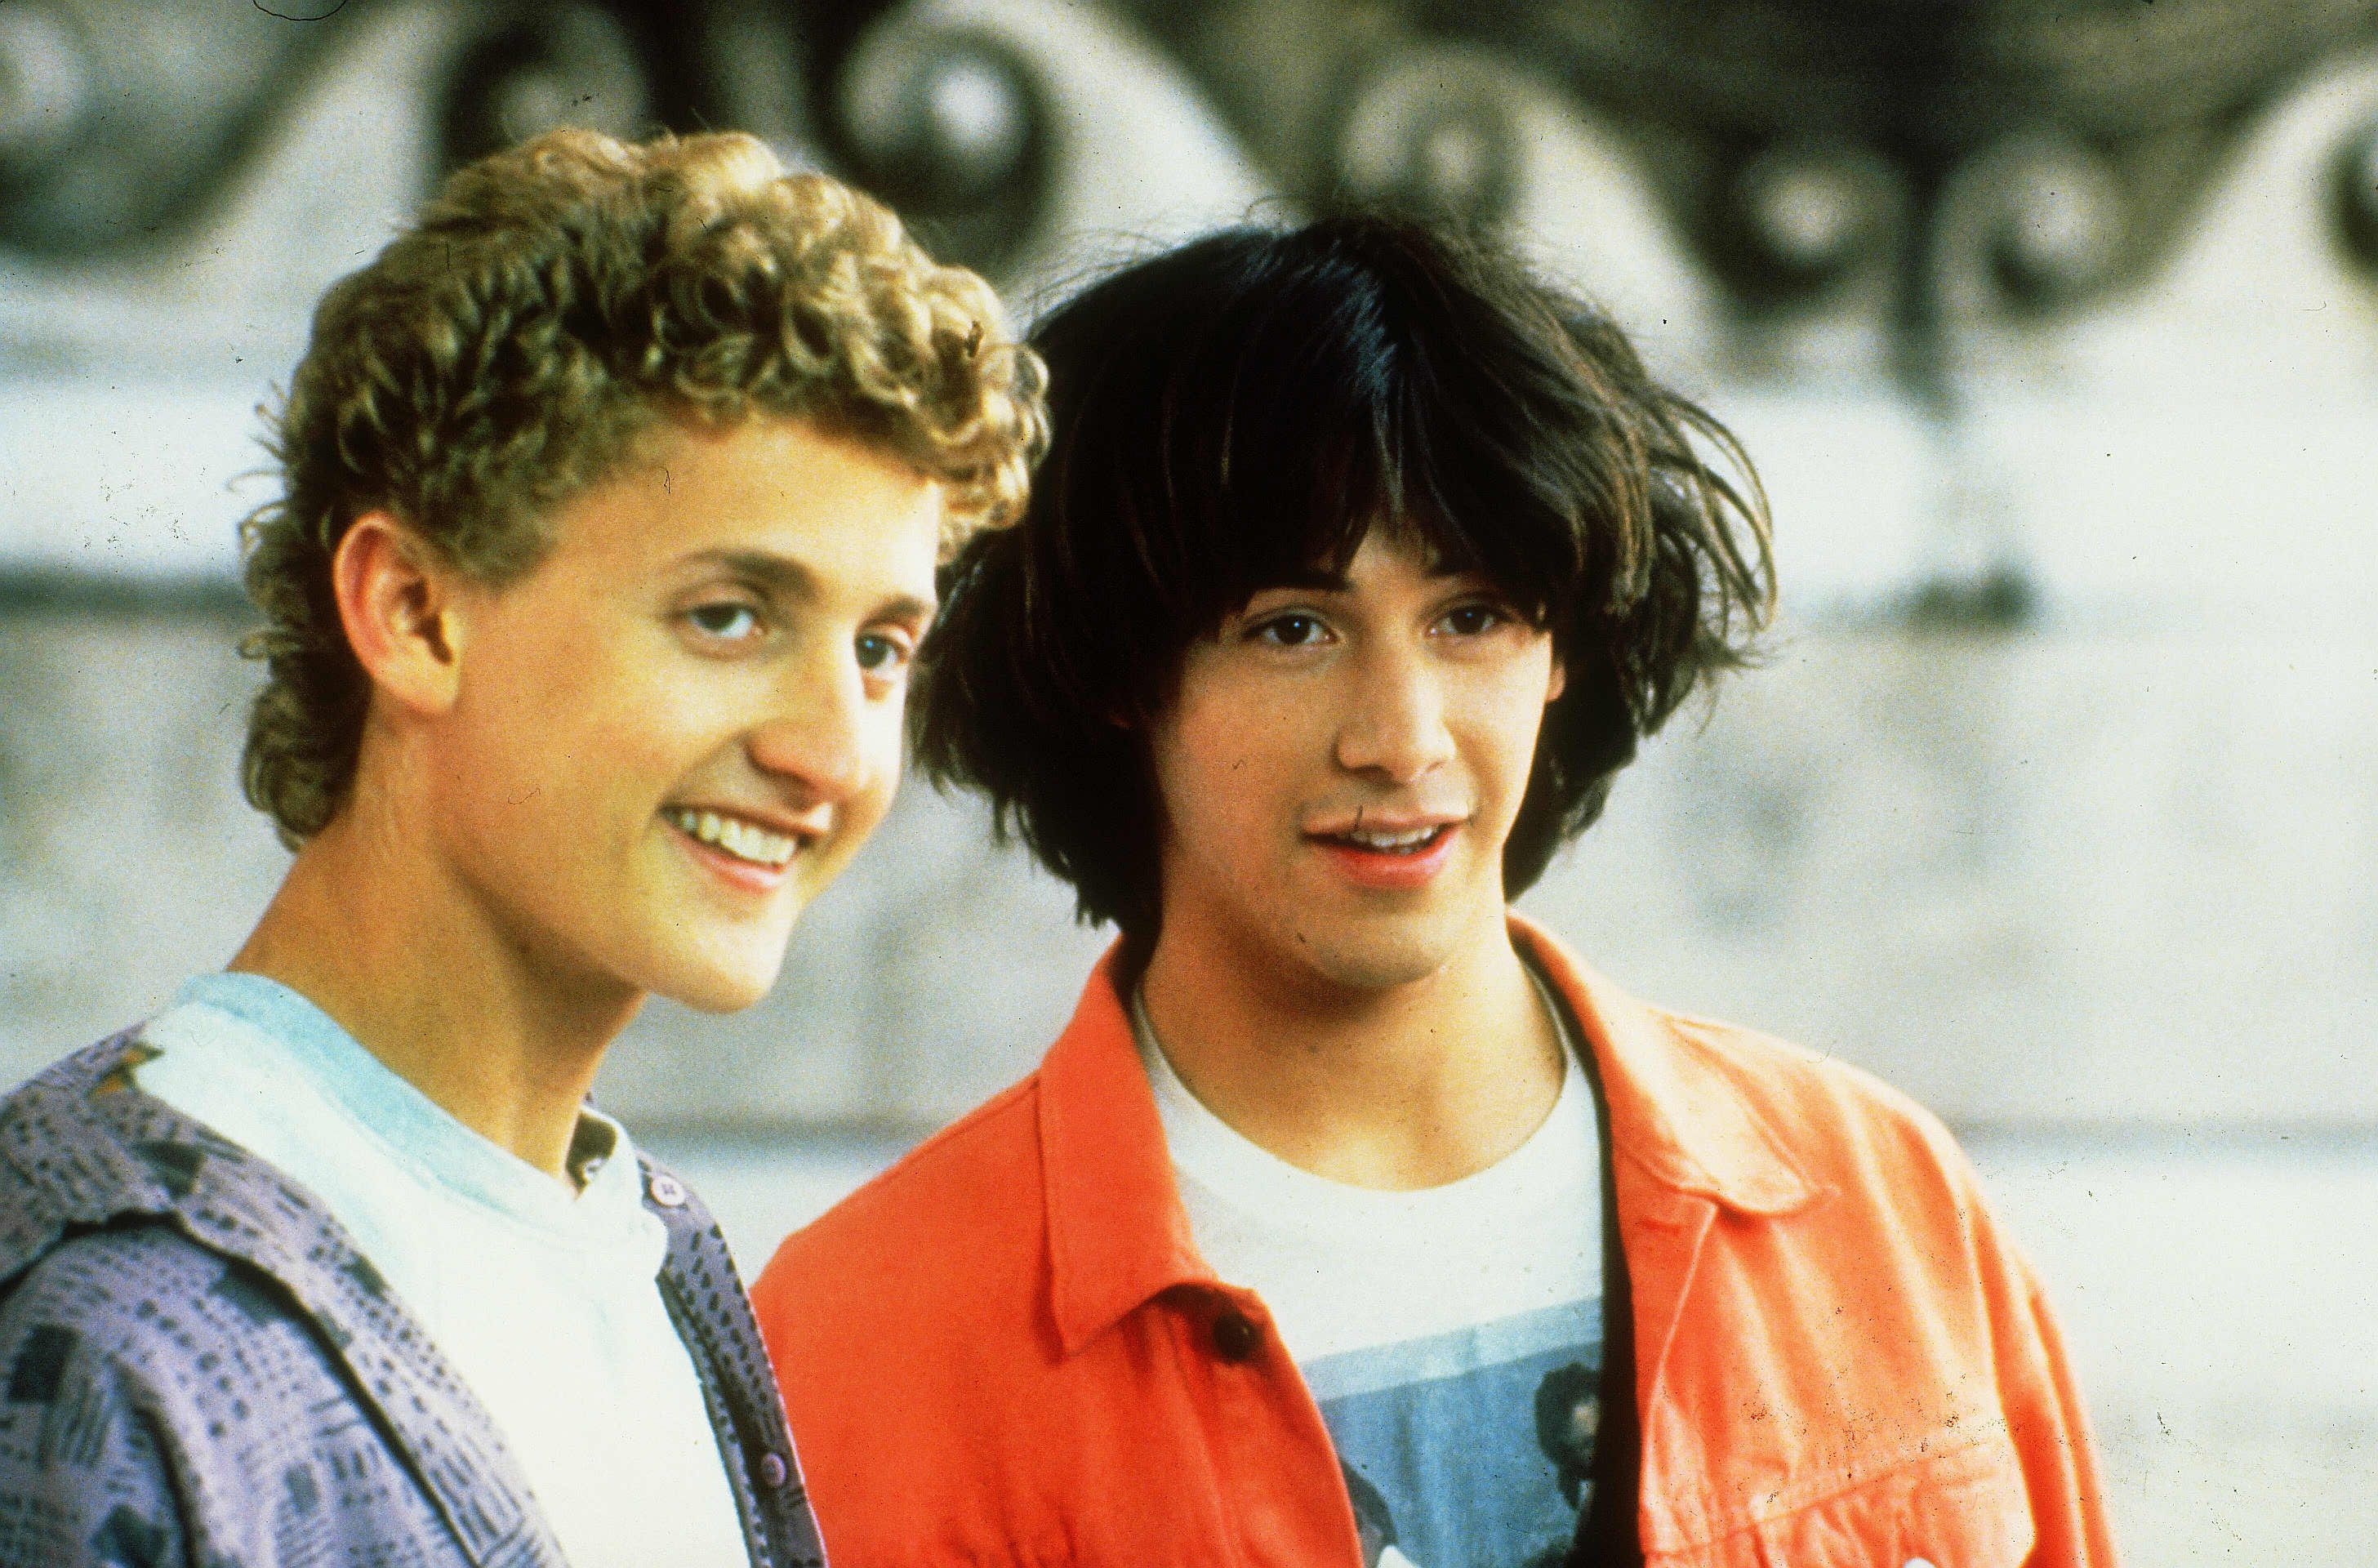 Bill & Ted 3 unveils first-look at return of classic character